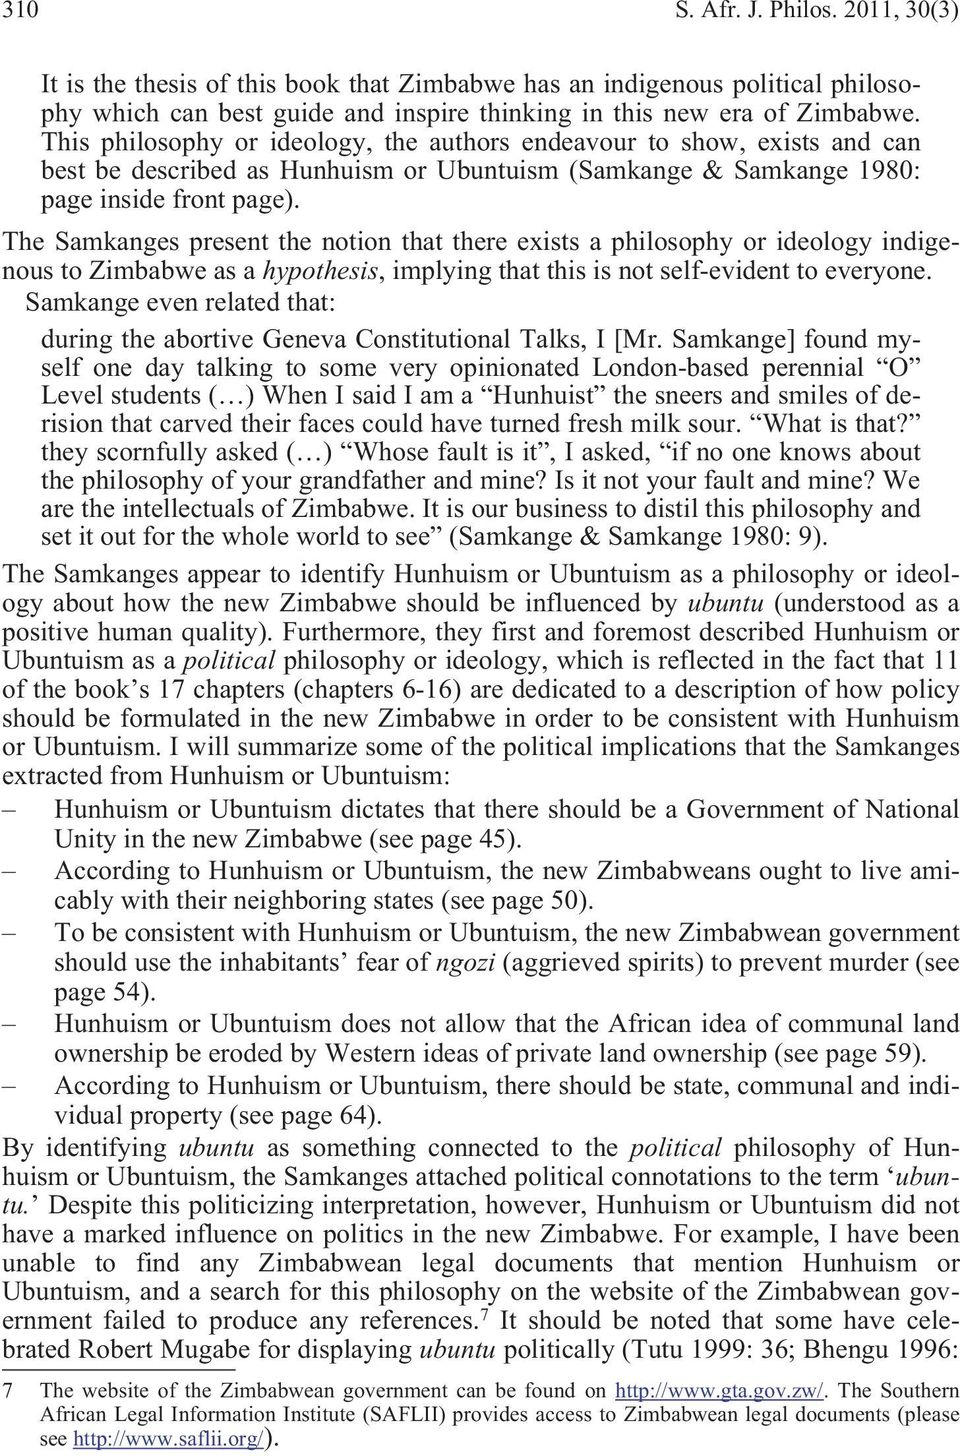 The Samkanges present the notion that there exists a philosophy or ideology indigenous to Zimbabwe as a hypothesis, implying that this is not self-evident to everyone.